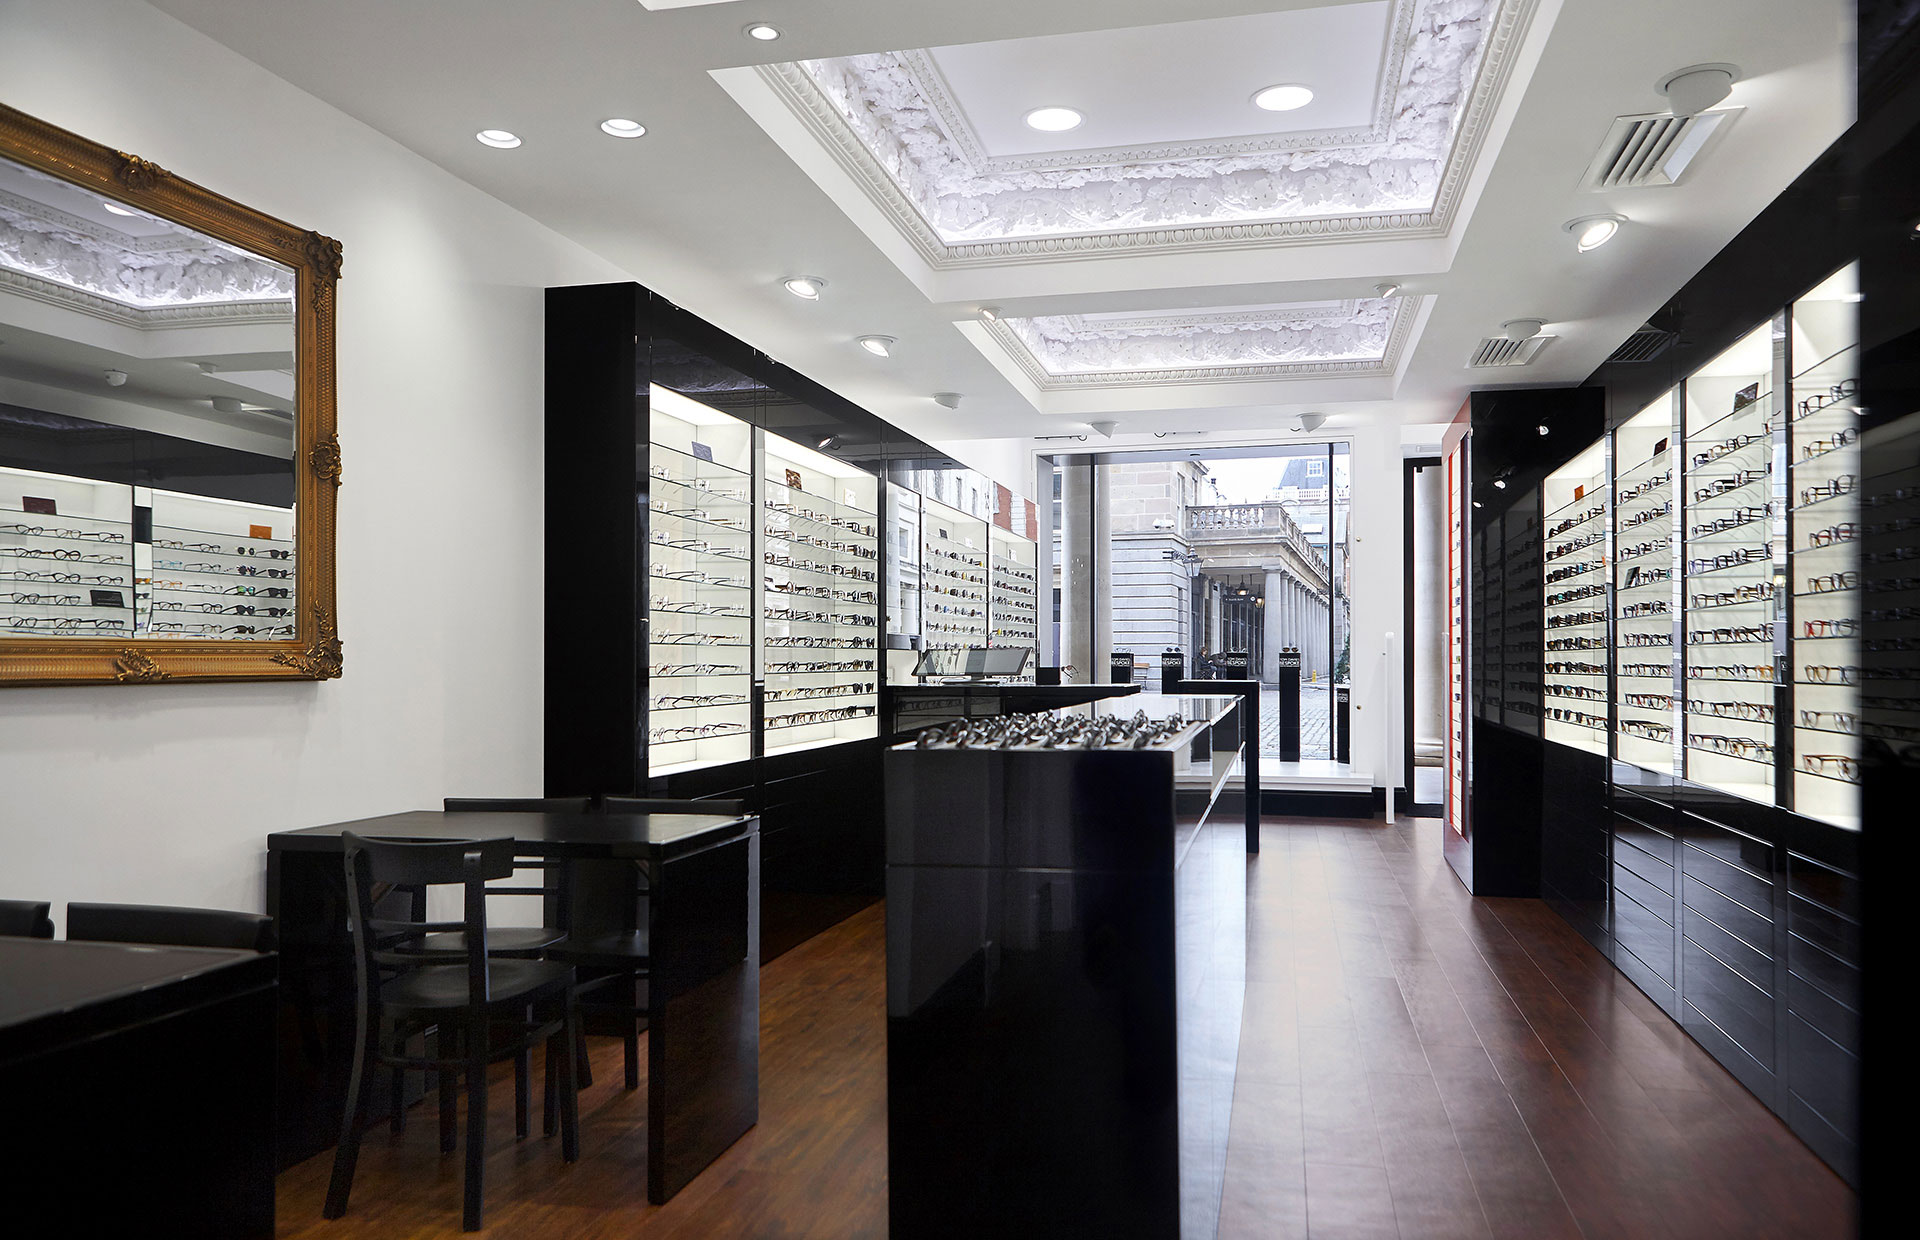 Shop floor of Tom Davies Bespoke Opticians in Covent Garden